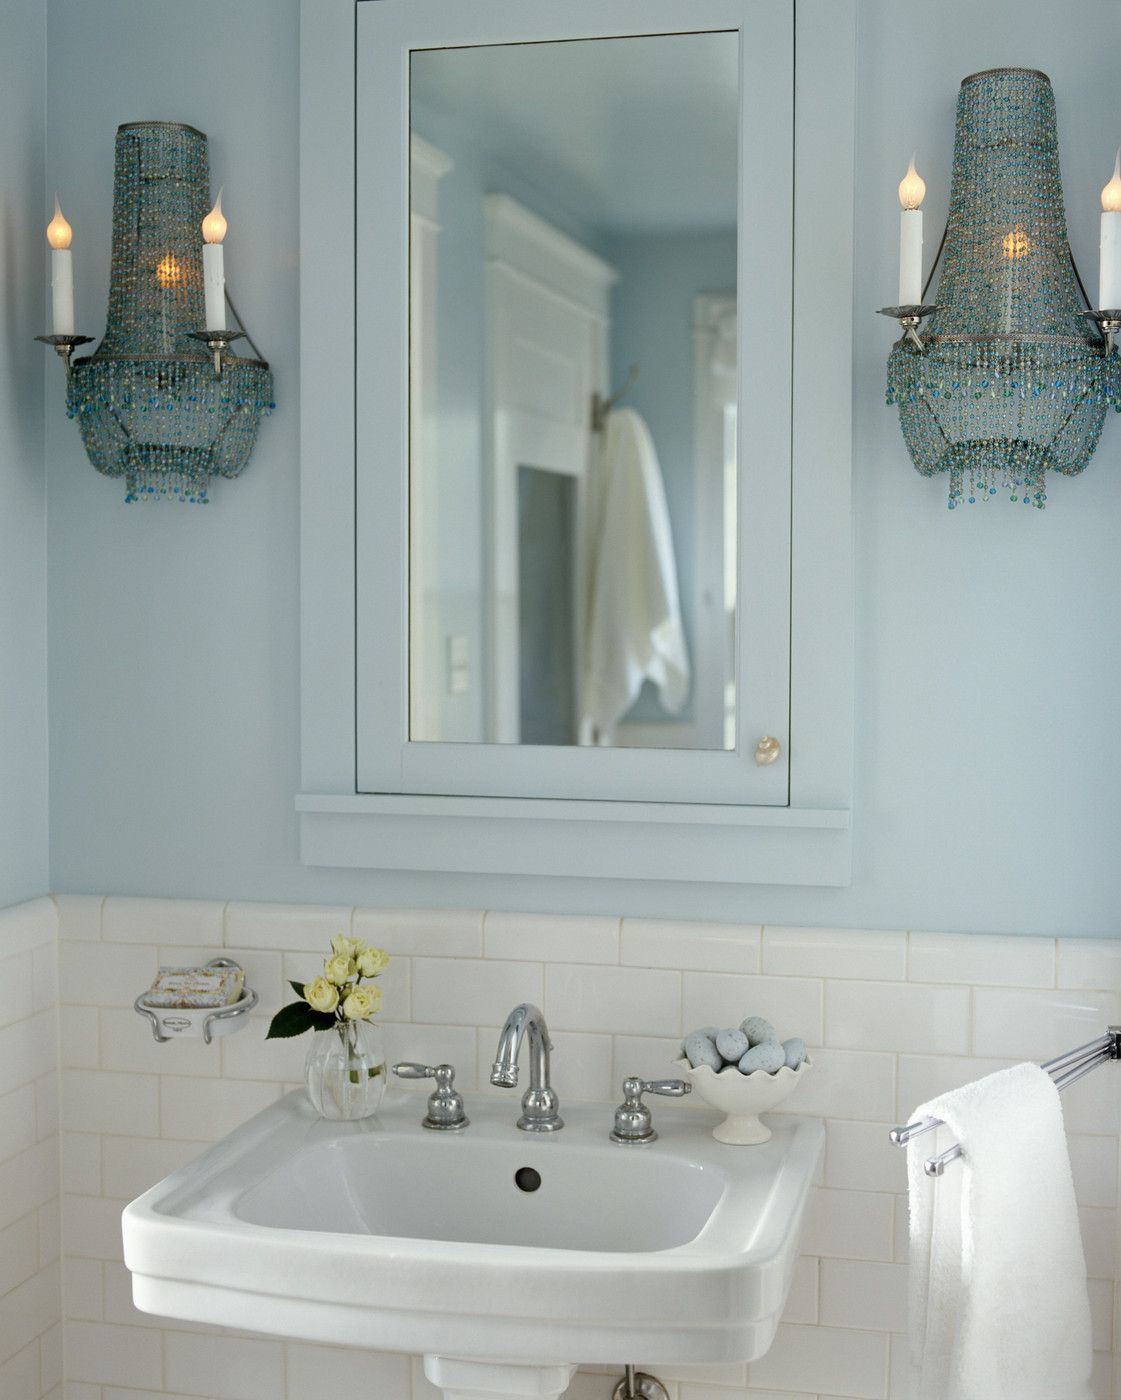 Candle Sconce Photos With Images